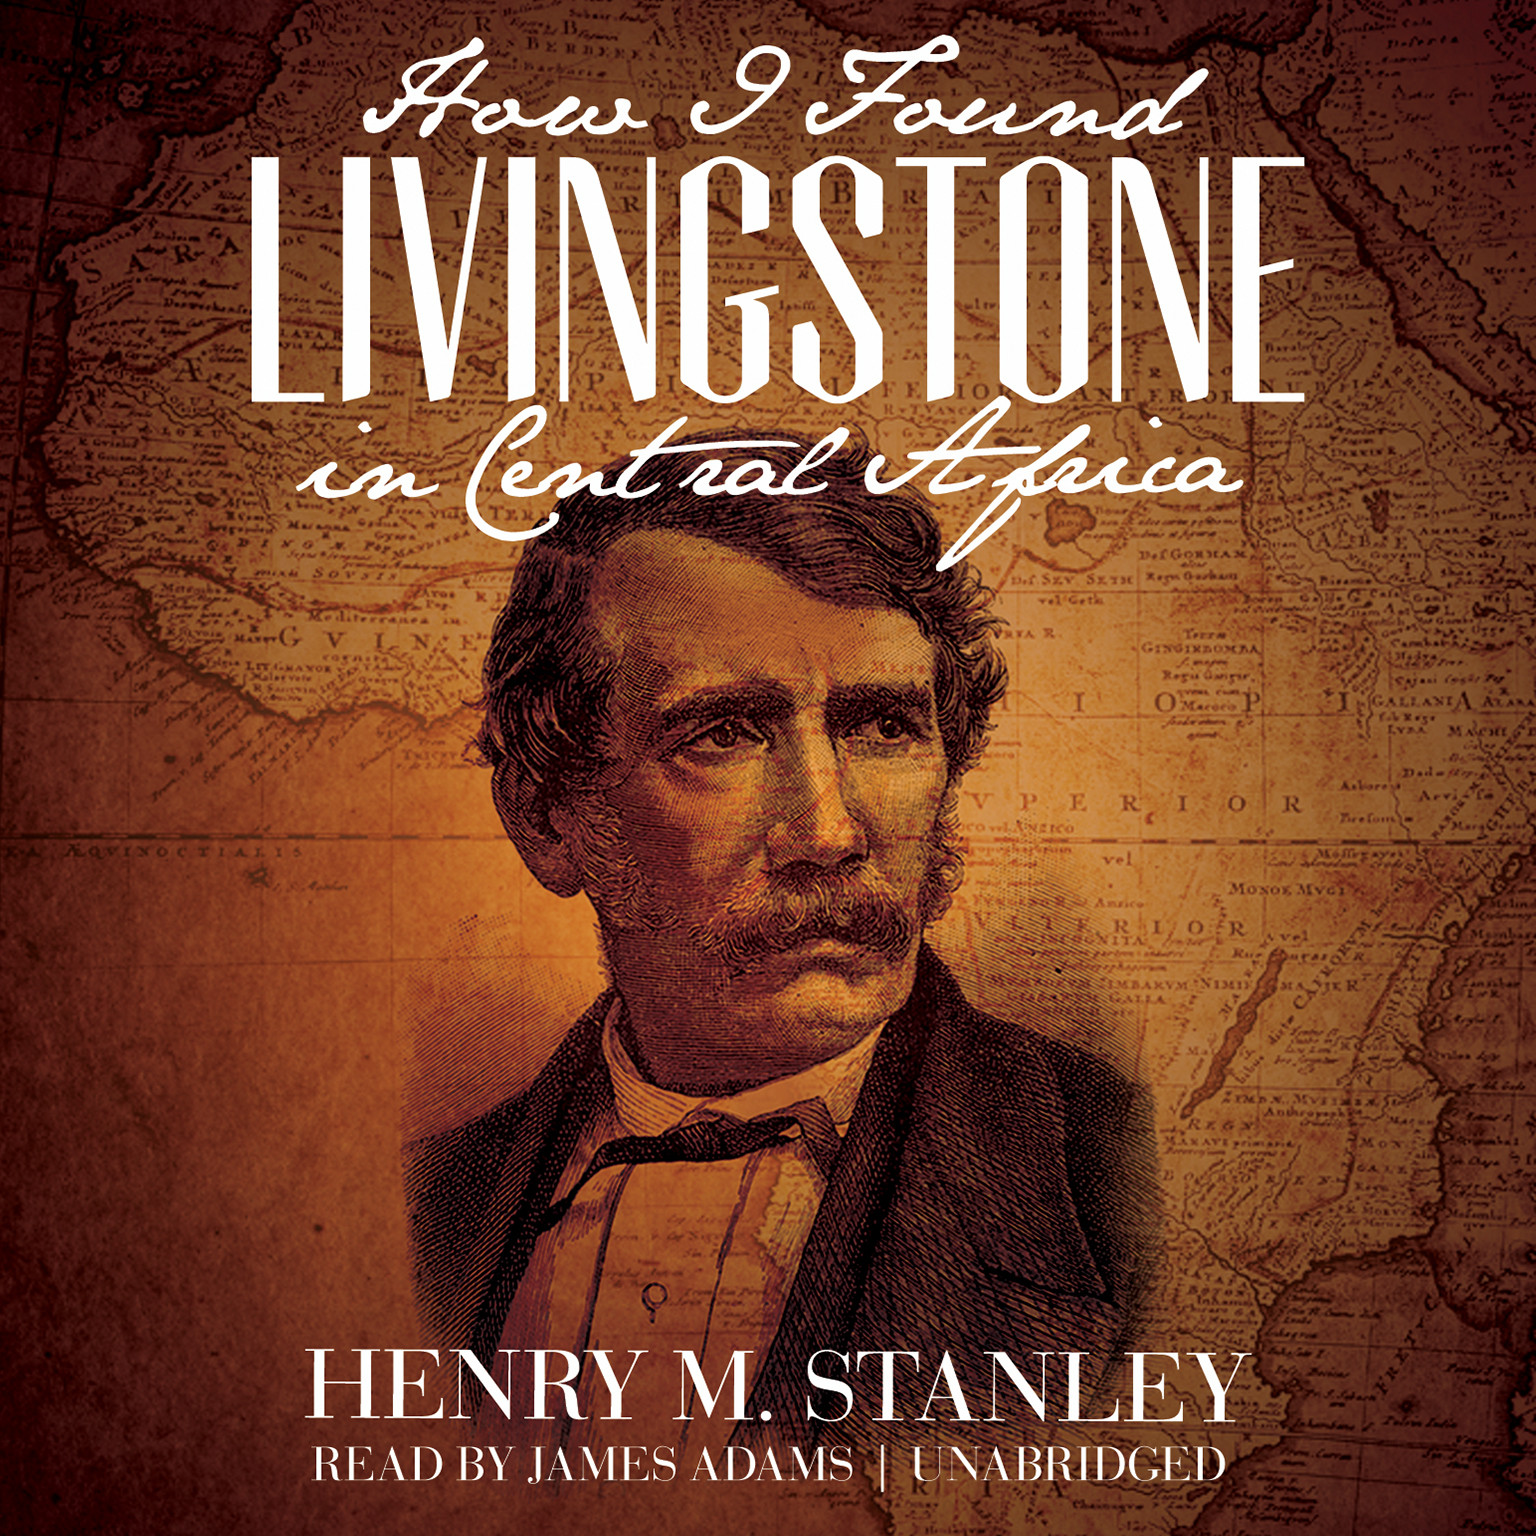 Printable How I Found Livingstone in Central Africa Audiobook Cover Art